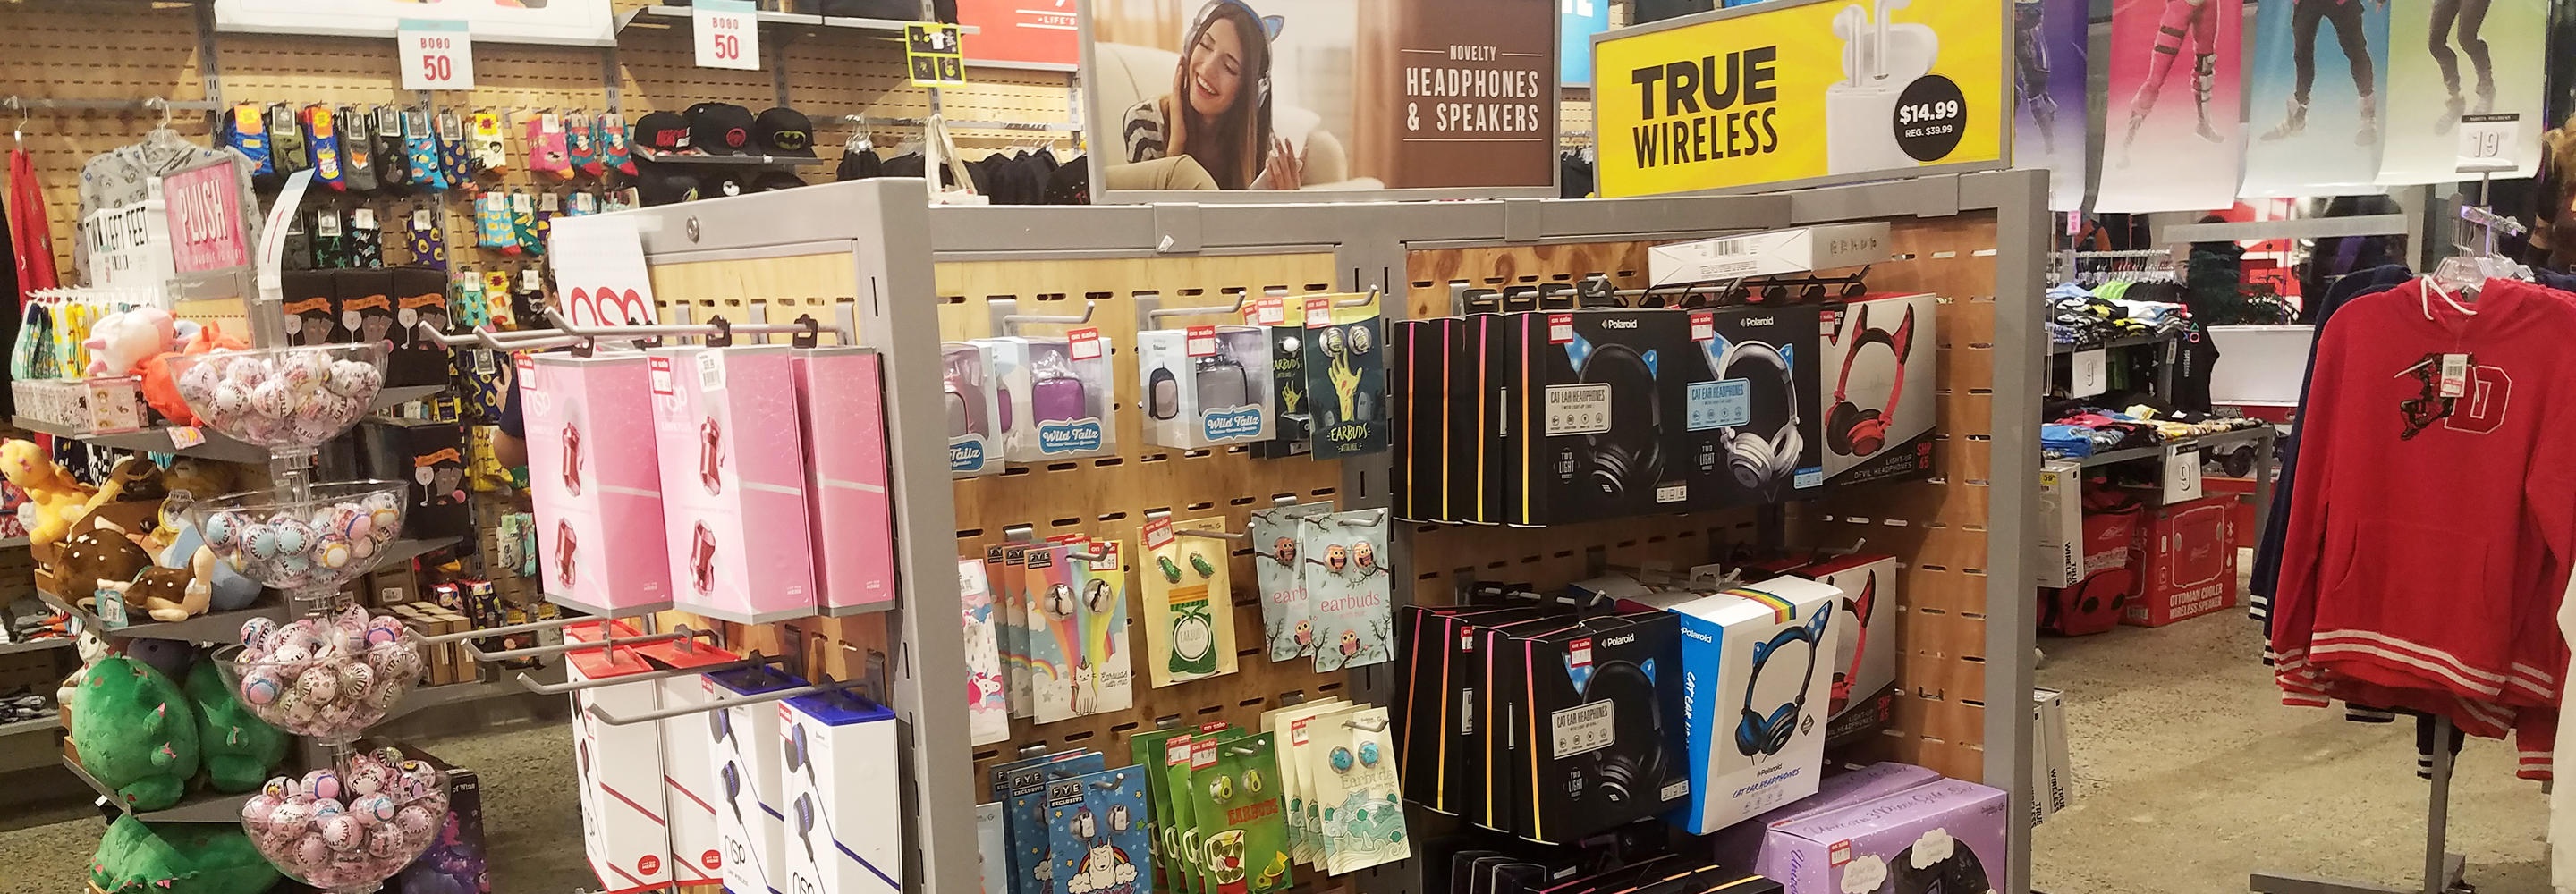 Electronics section featuring headphones and earbuds in FYE